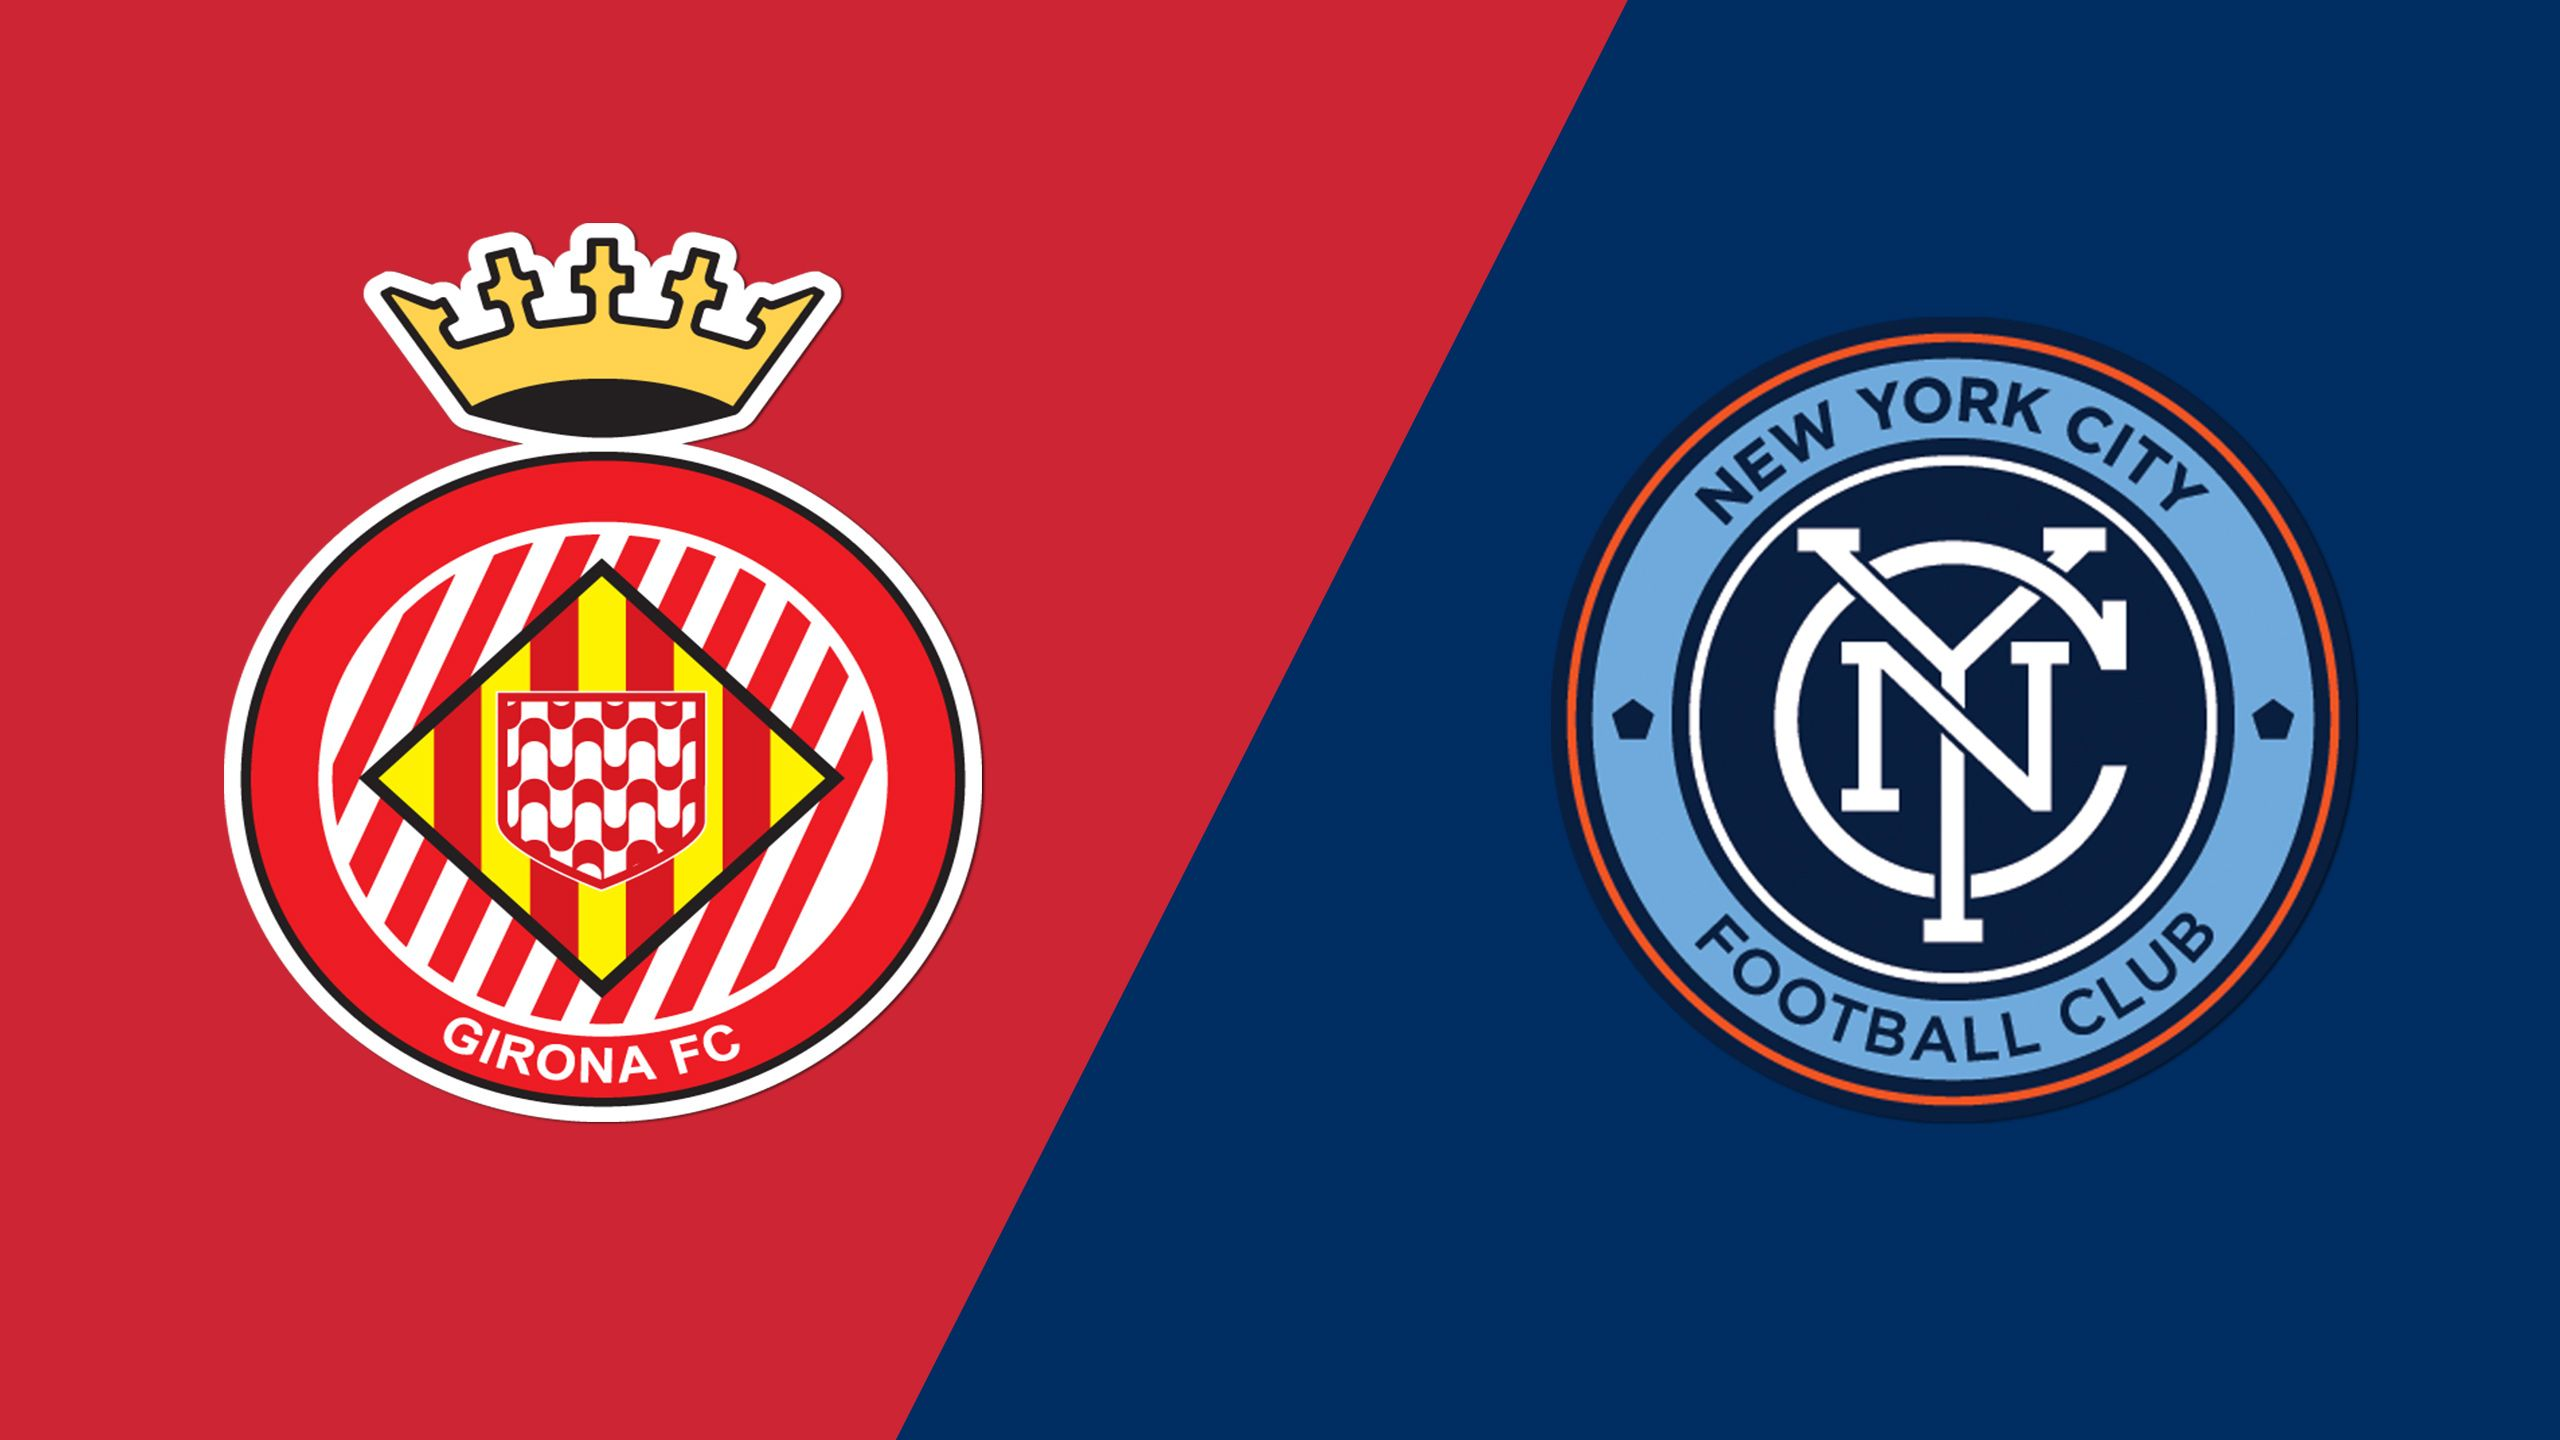 Girona Under-14 vs. New York City FC Under-14 (Manchester City Cup)